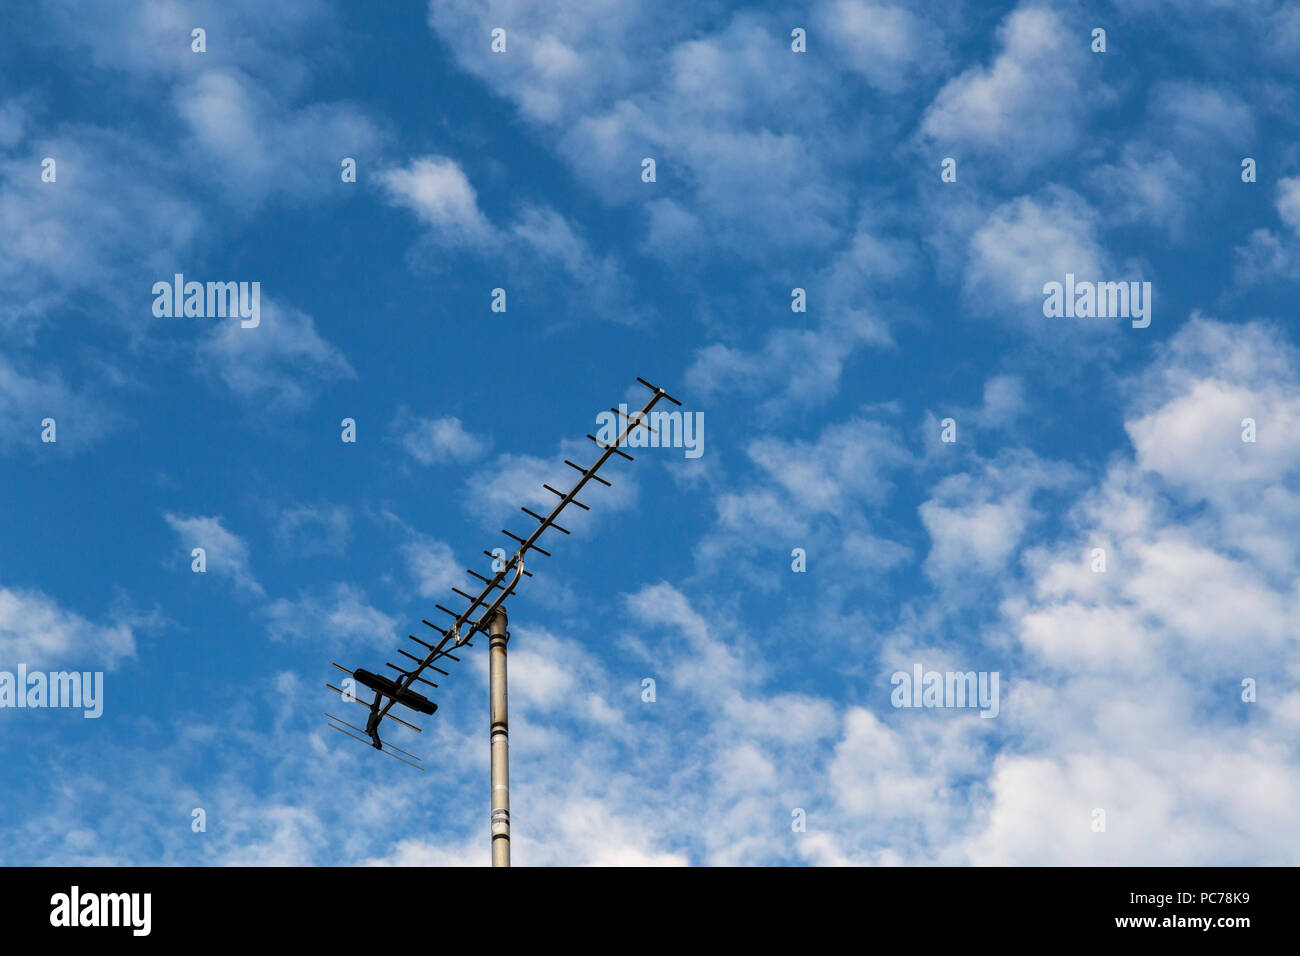 Digital Television Aerial Set Against Blue and White Sky - Stock Image